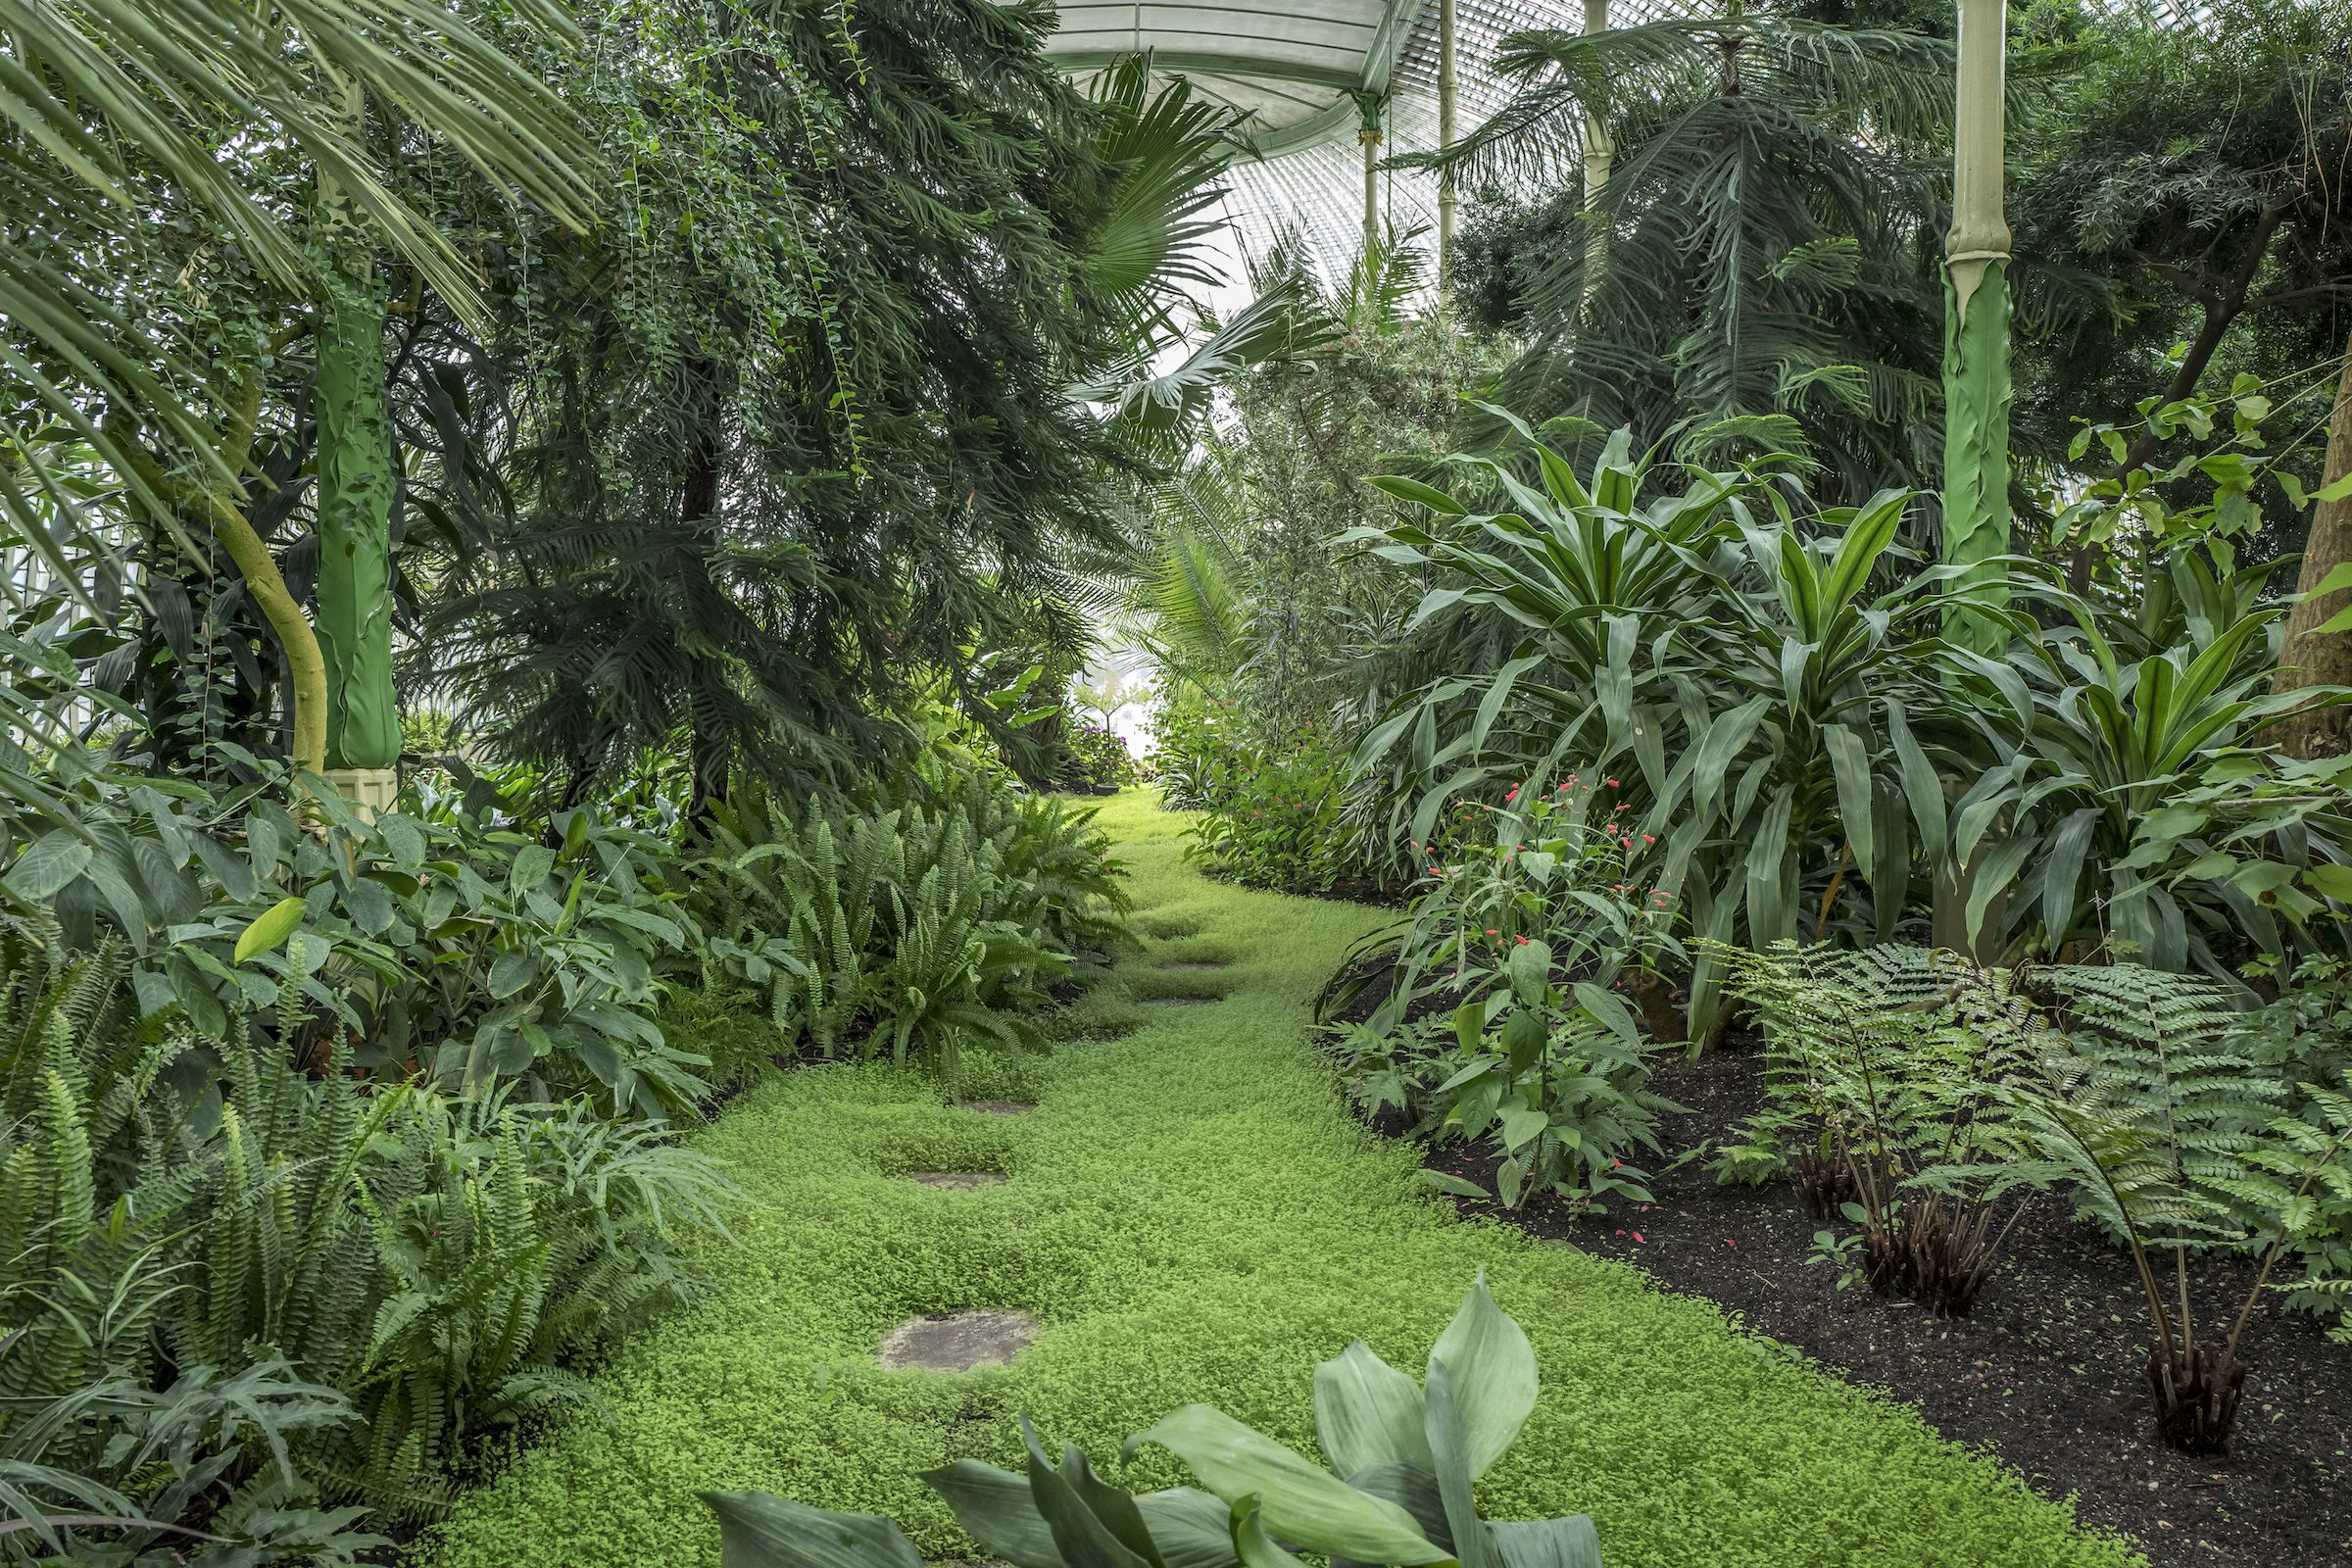 Beautiful greenery in the Lednice-Valtice conservatory in the Czech Republic.